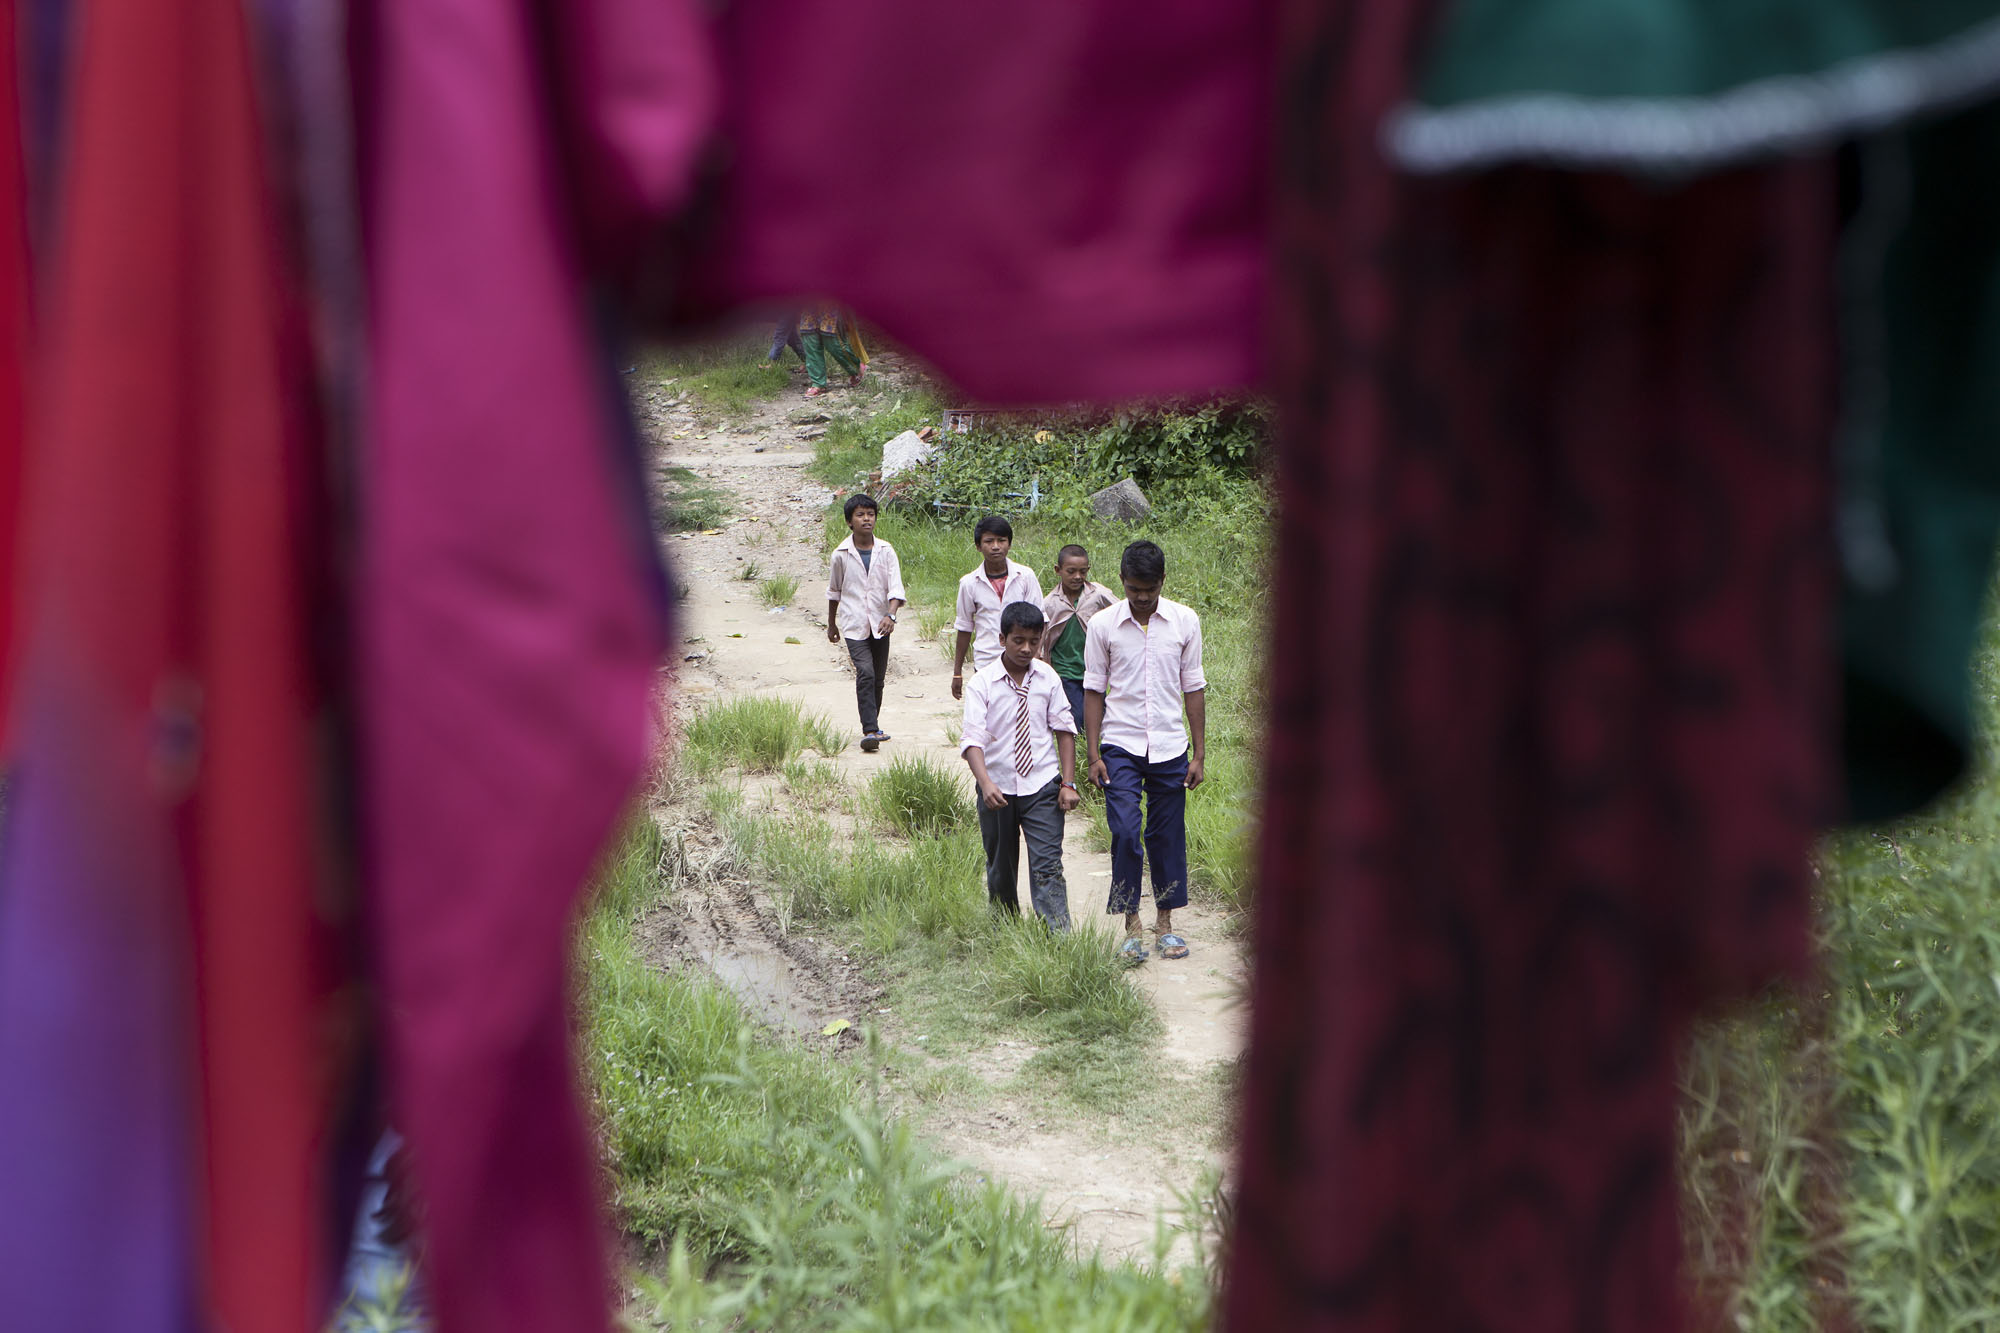 Kids leave school in the Kadamnas Village ward no. 4. Private and government schools have now reopened. Sindupalchowk District, Nepal. August 3, 2015.